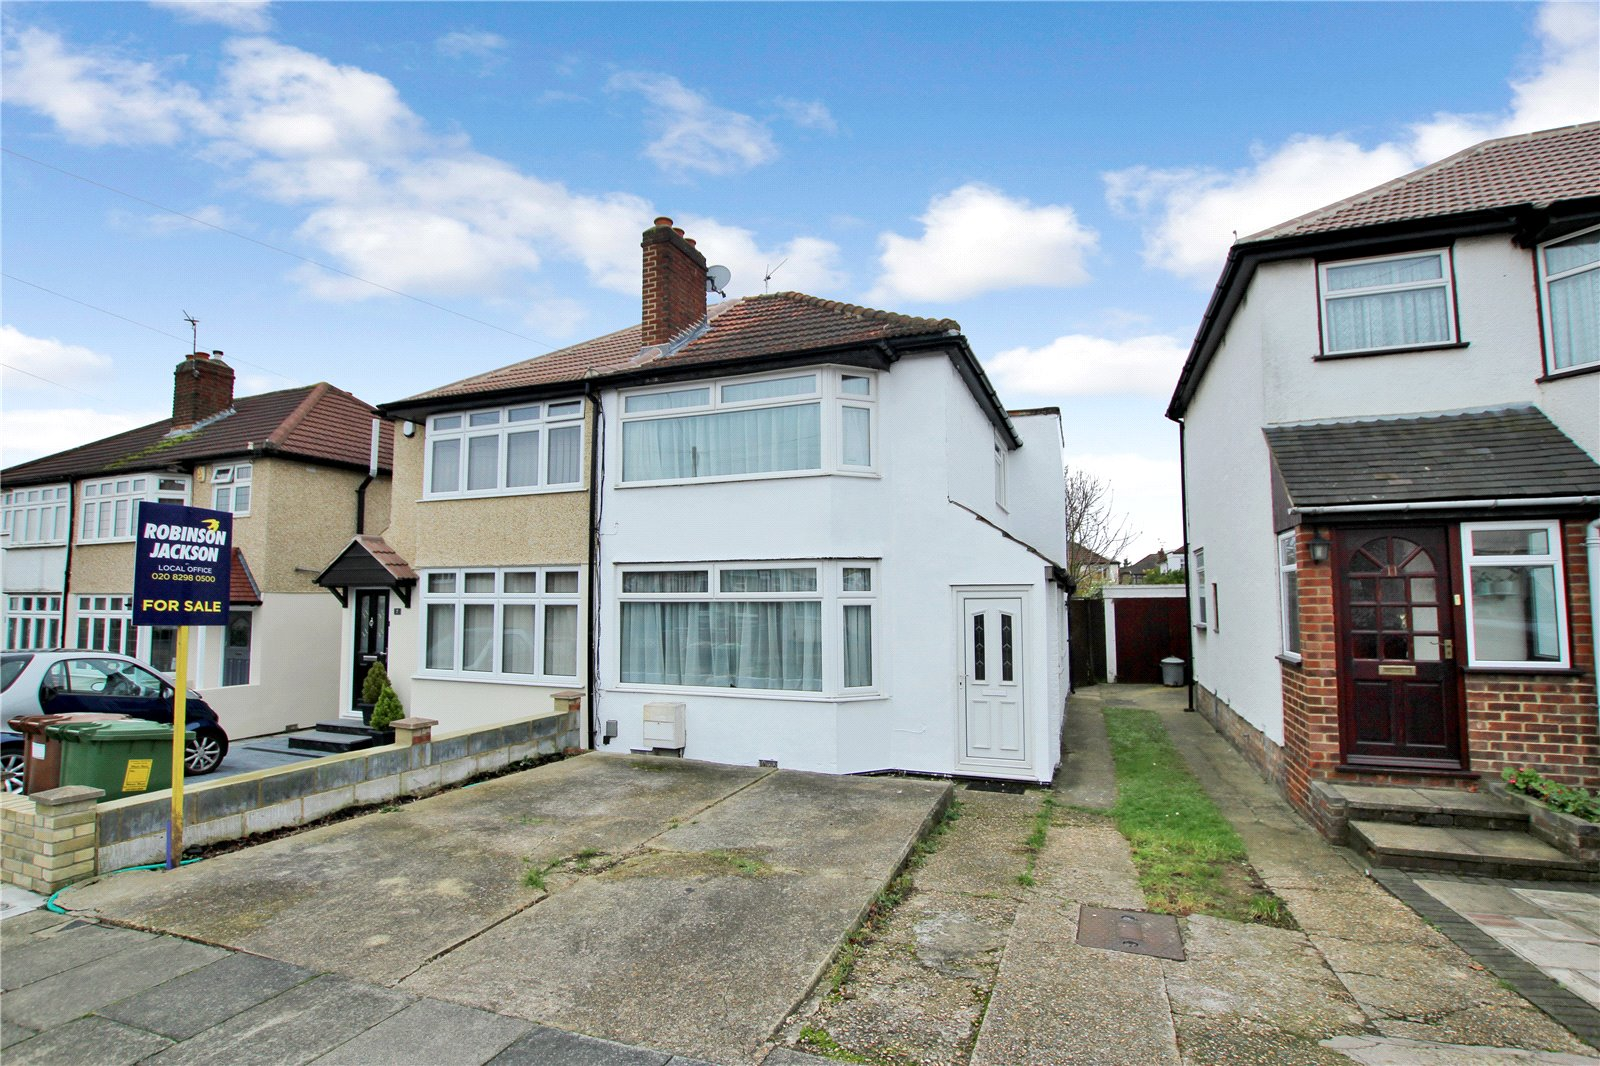 Clinton Avenue, Welling, Kent, DA16